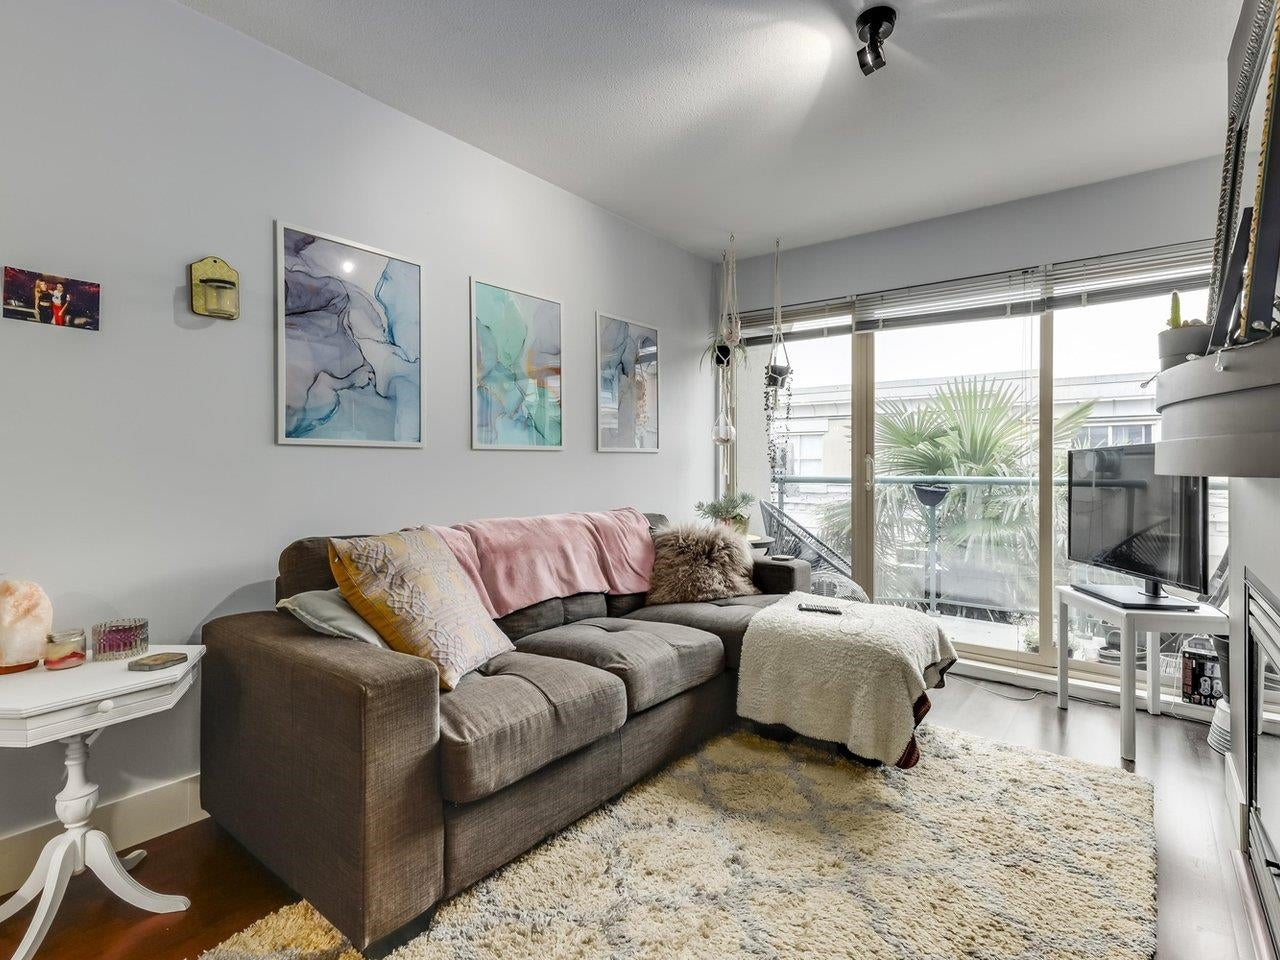 323 332 LONSDALE AVENUE - Lower Lonsdale Apartment/Condo for sale, 2 Bedrooms (R2626678) - #1